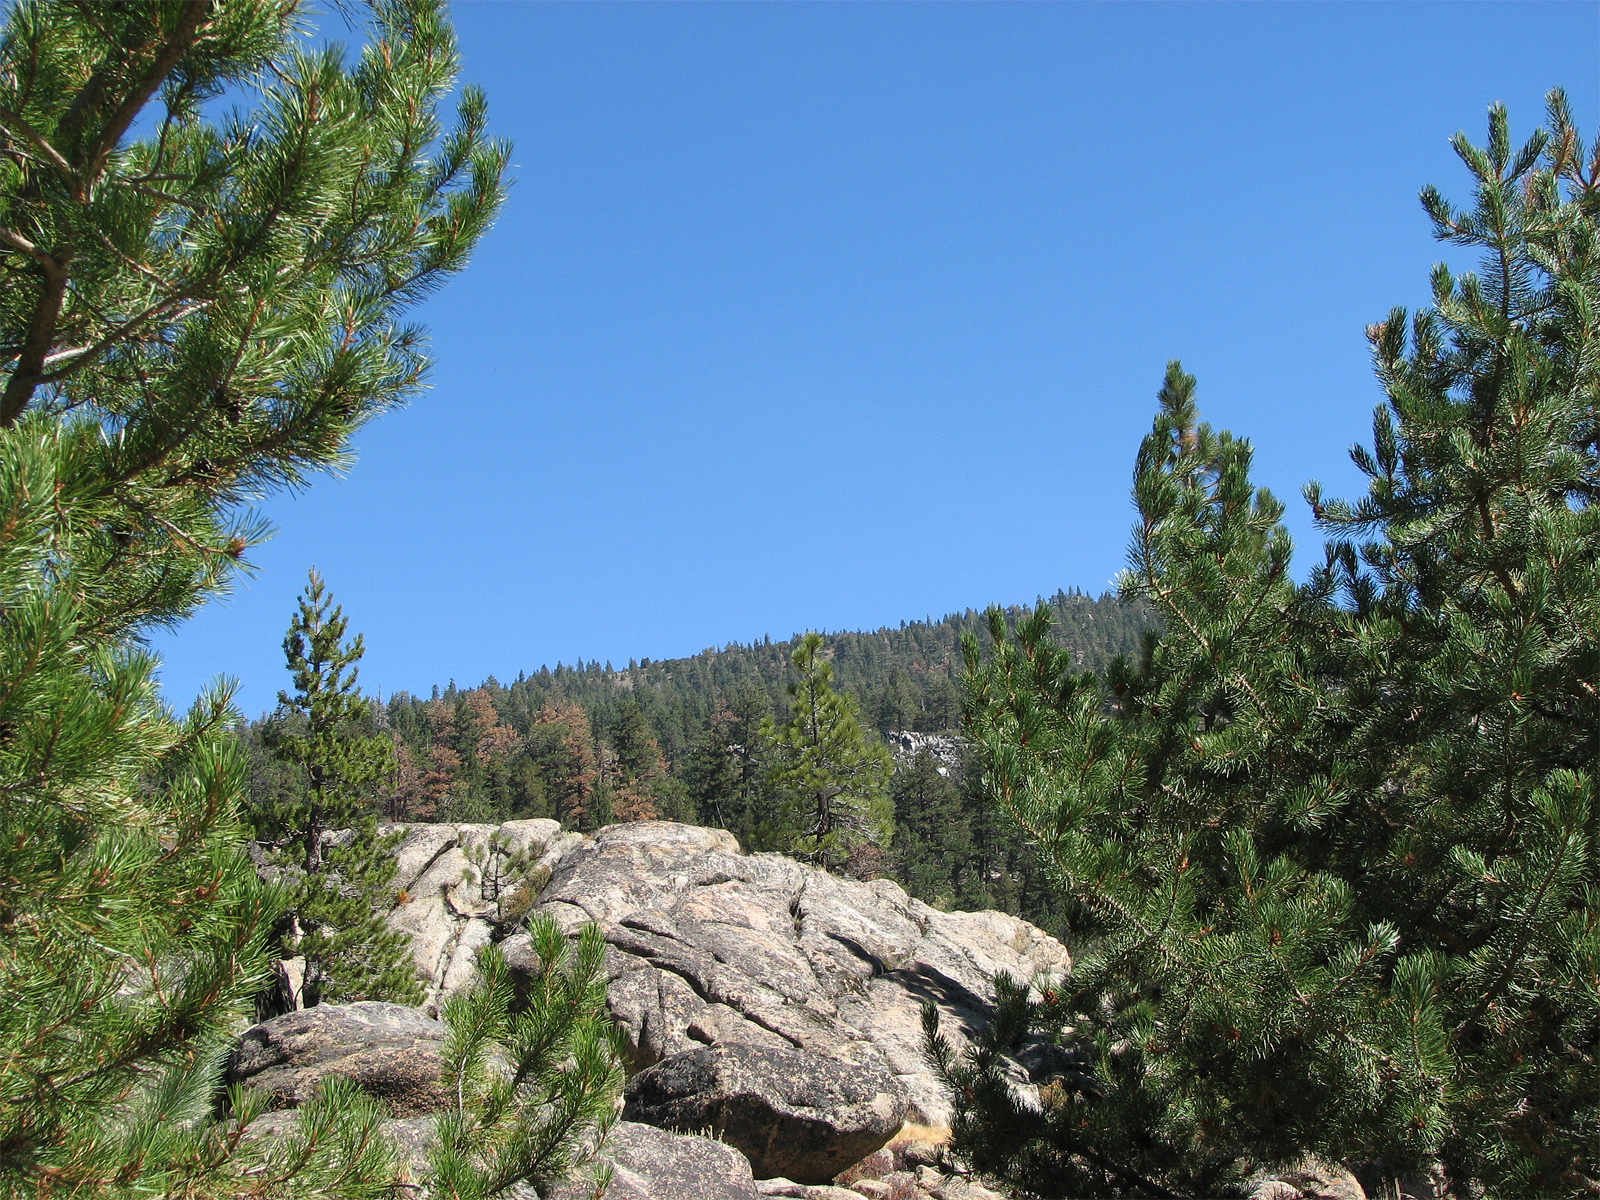 Mountain Pine Tree